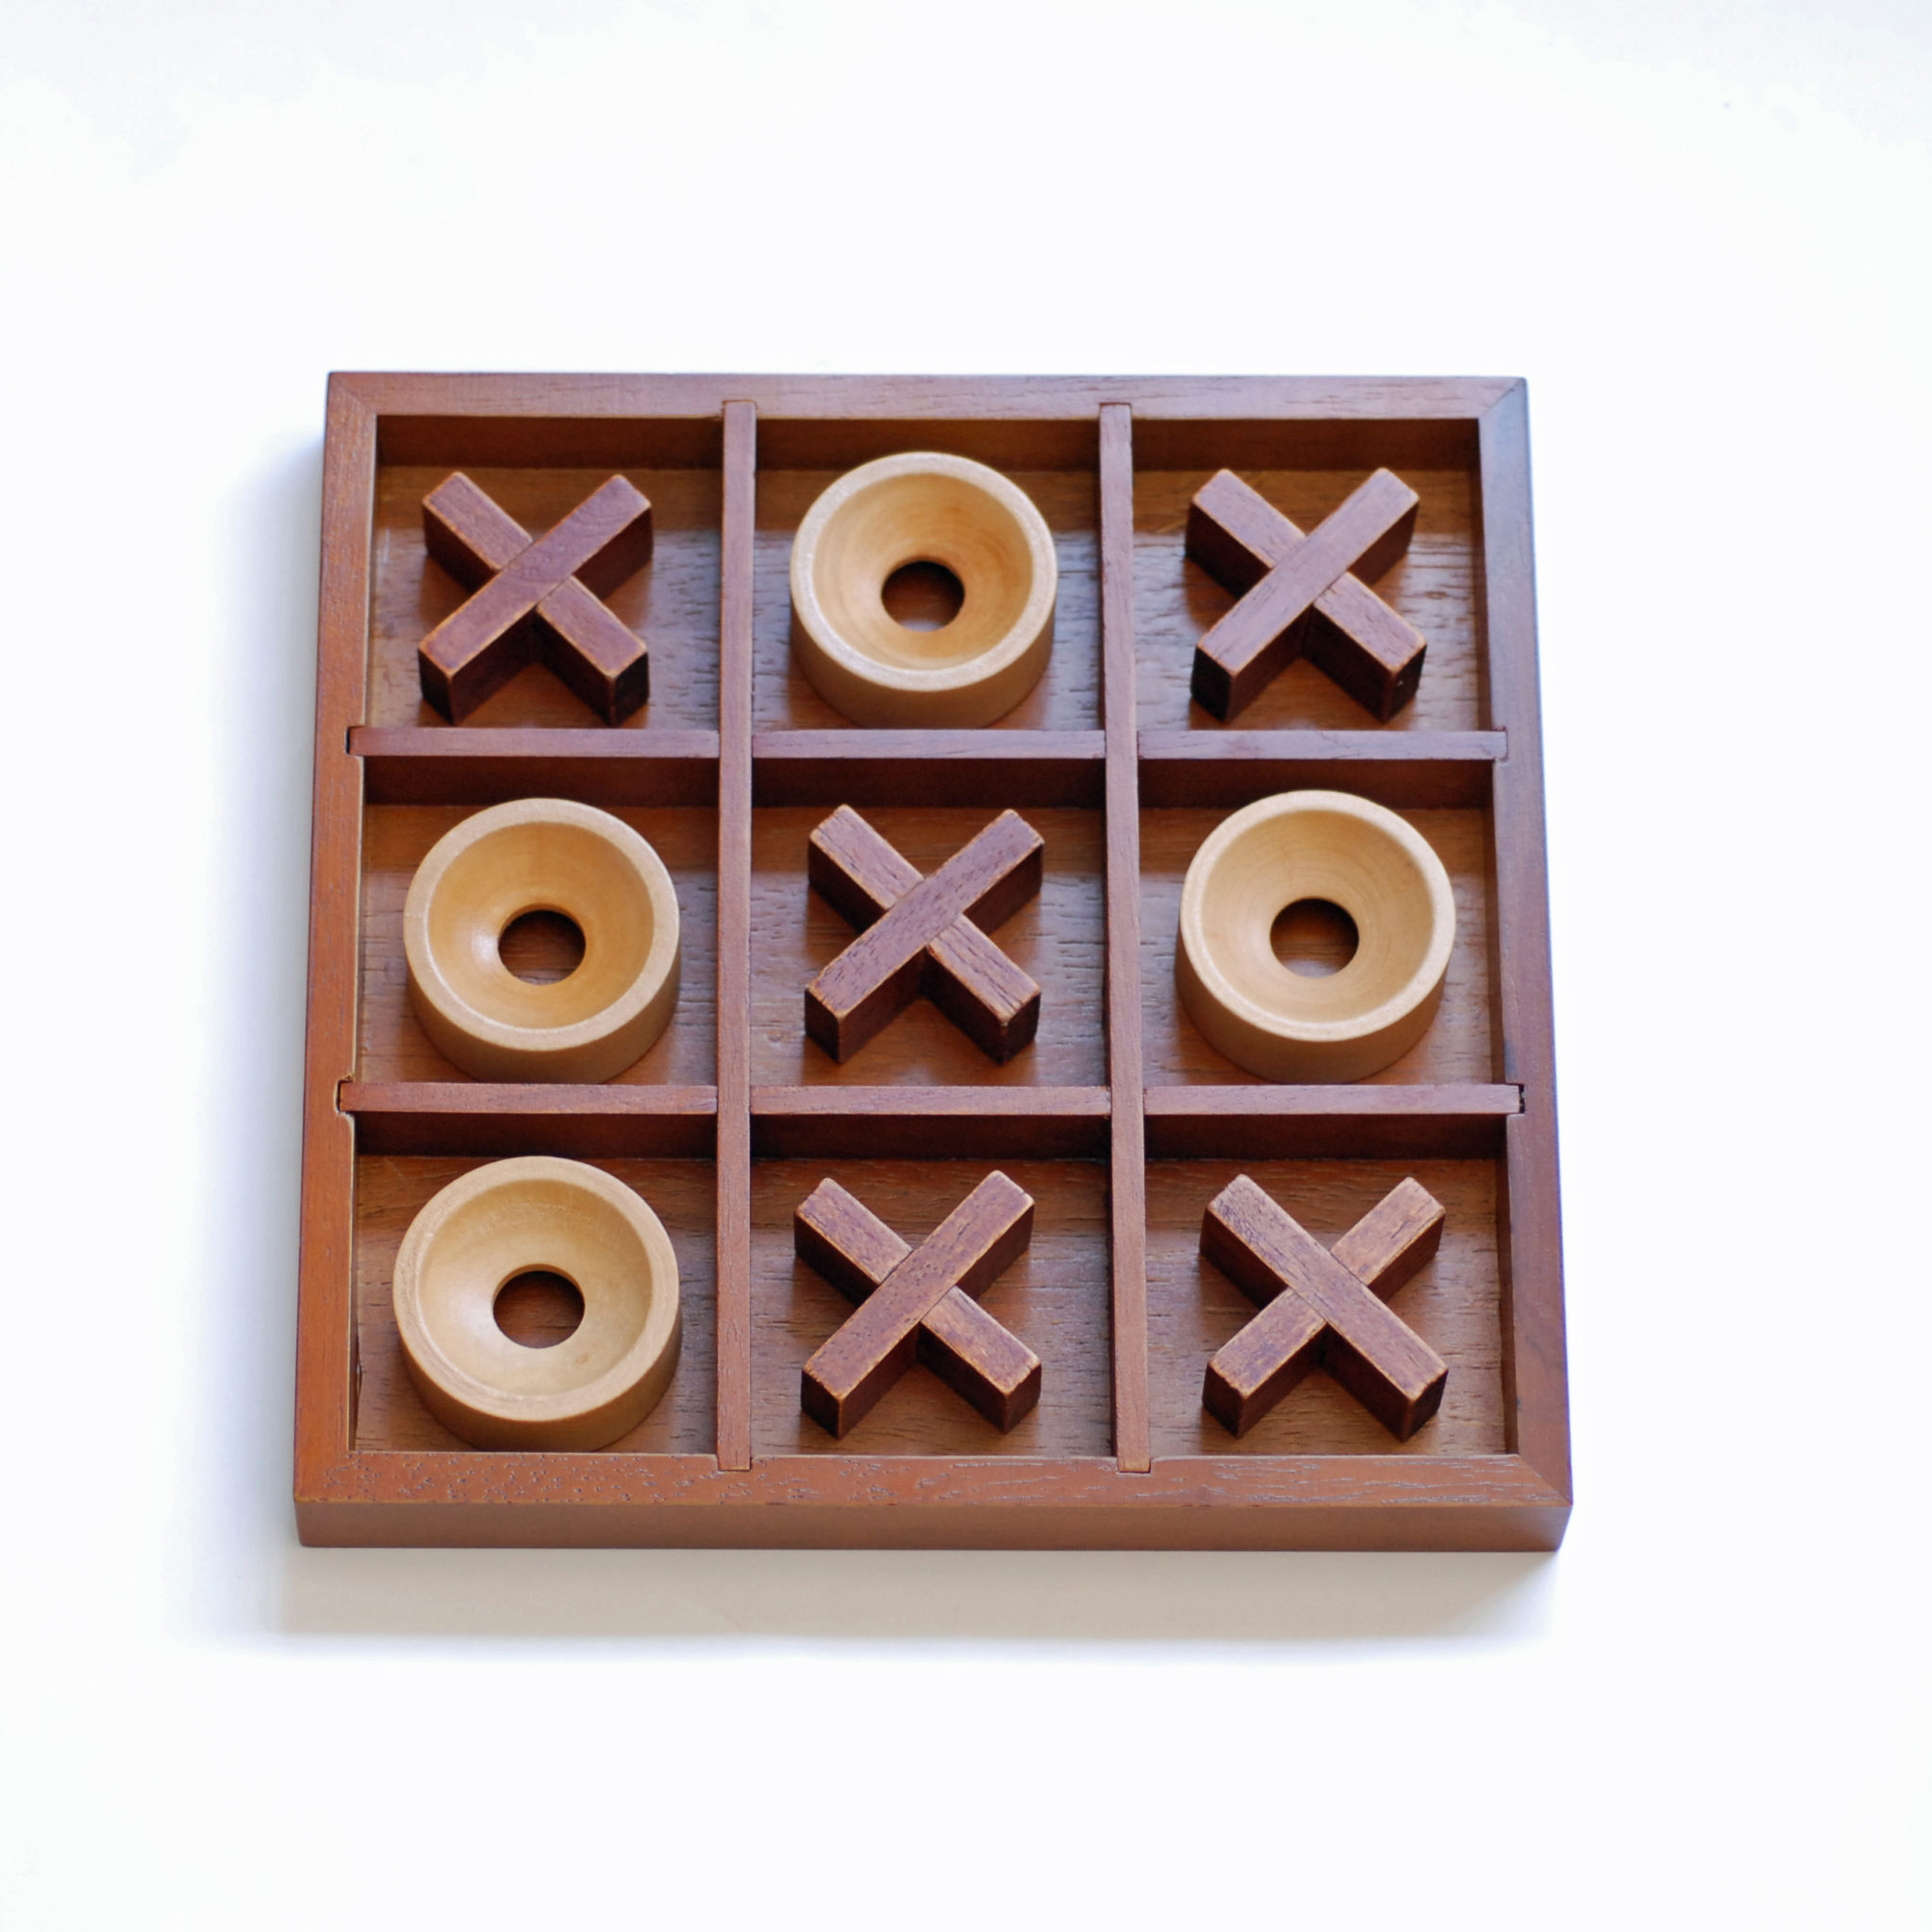 This is a picture of Declarative Tic Tac Toe Boards